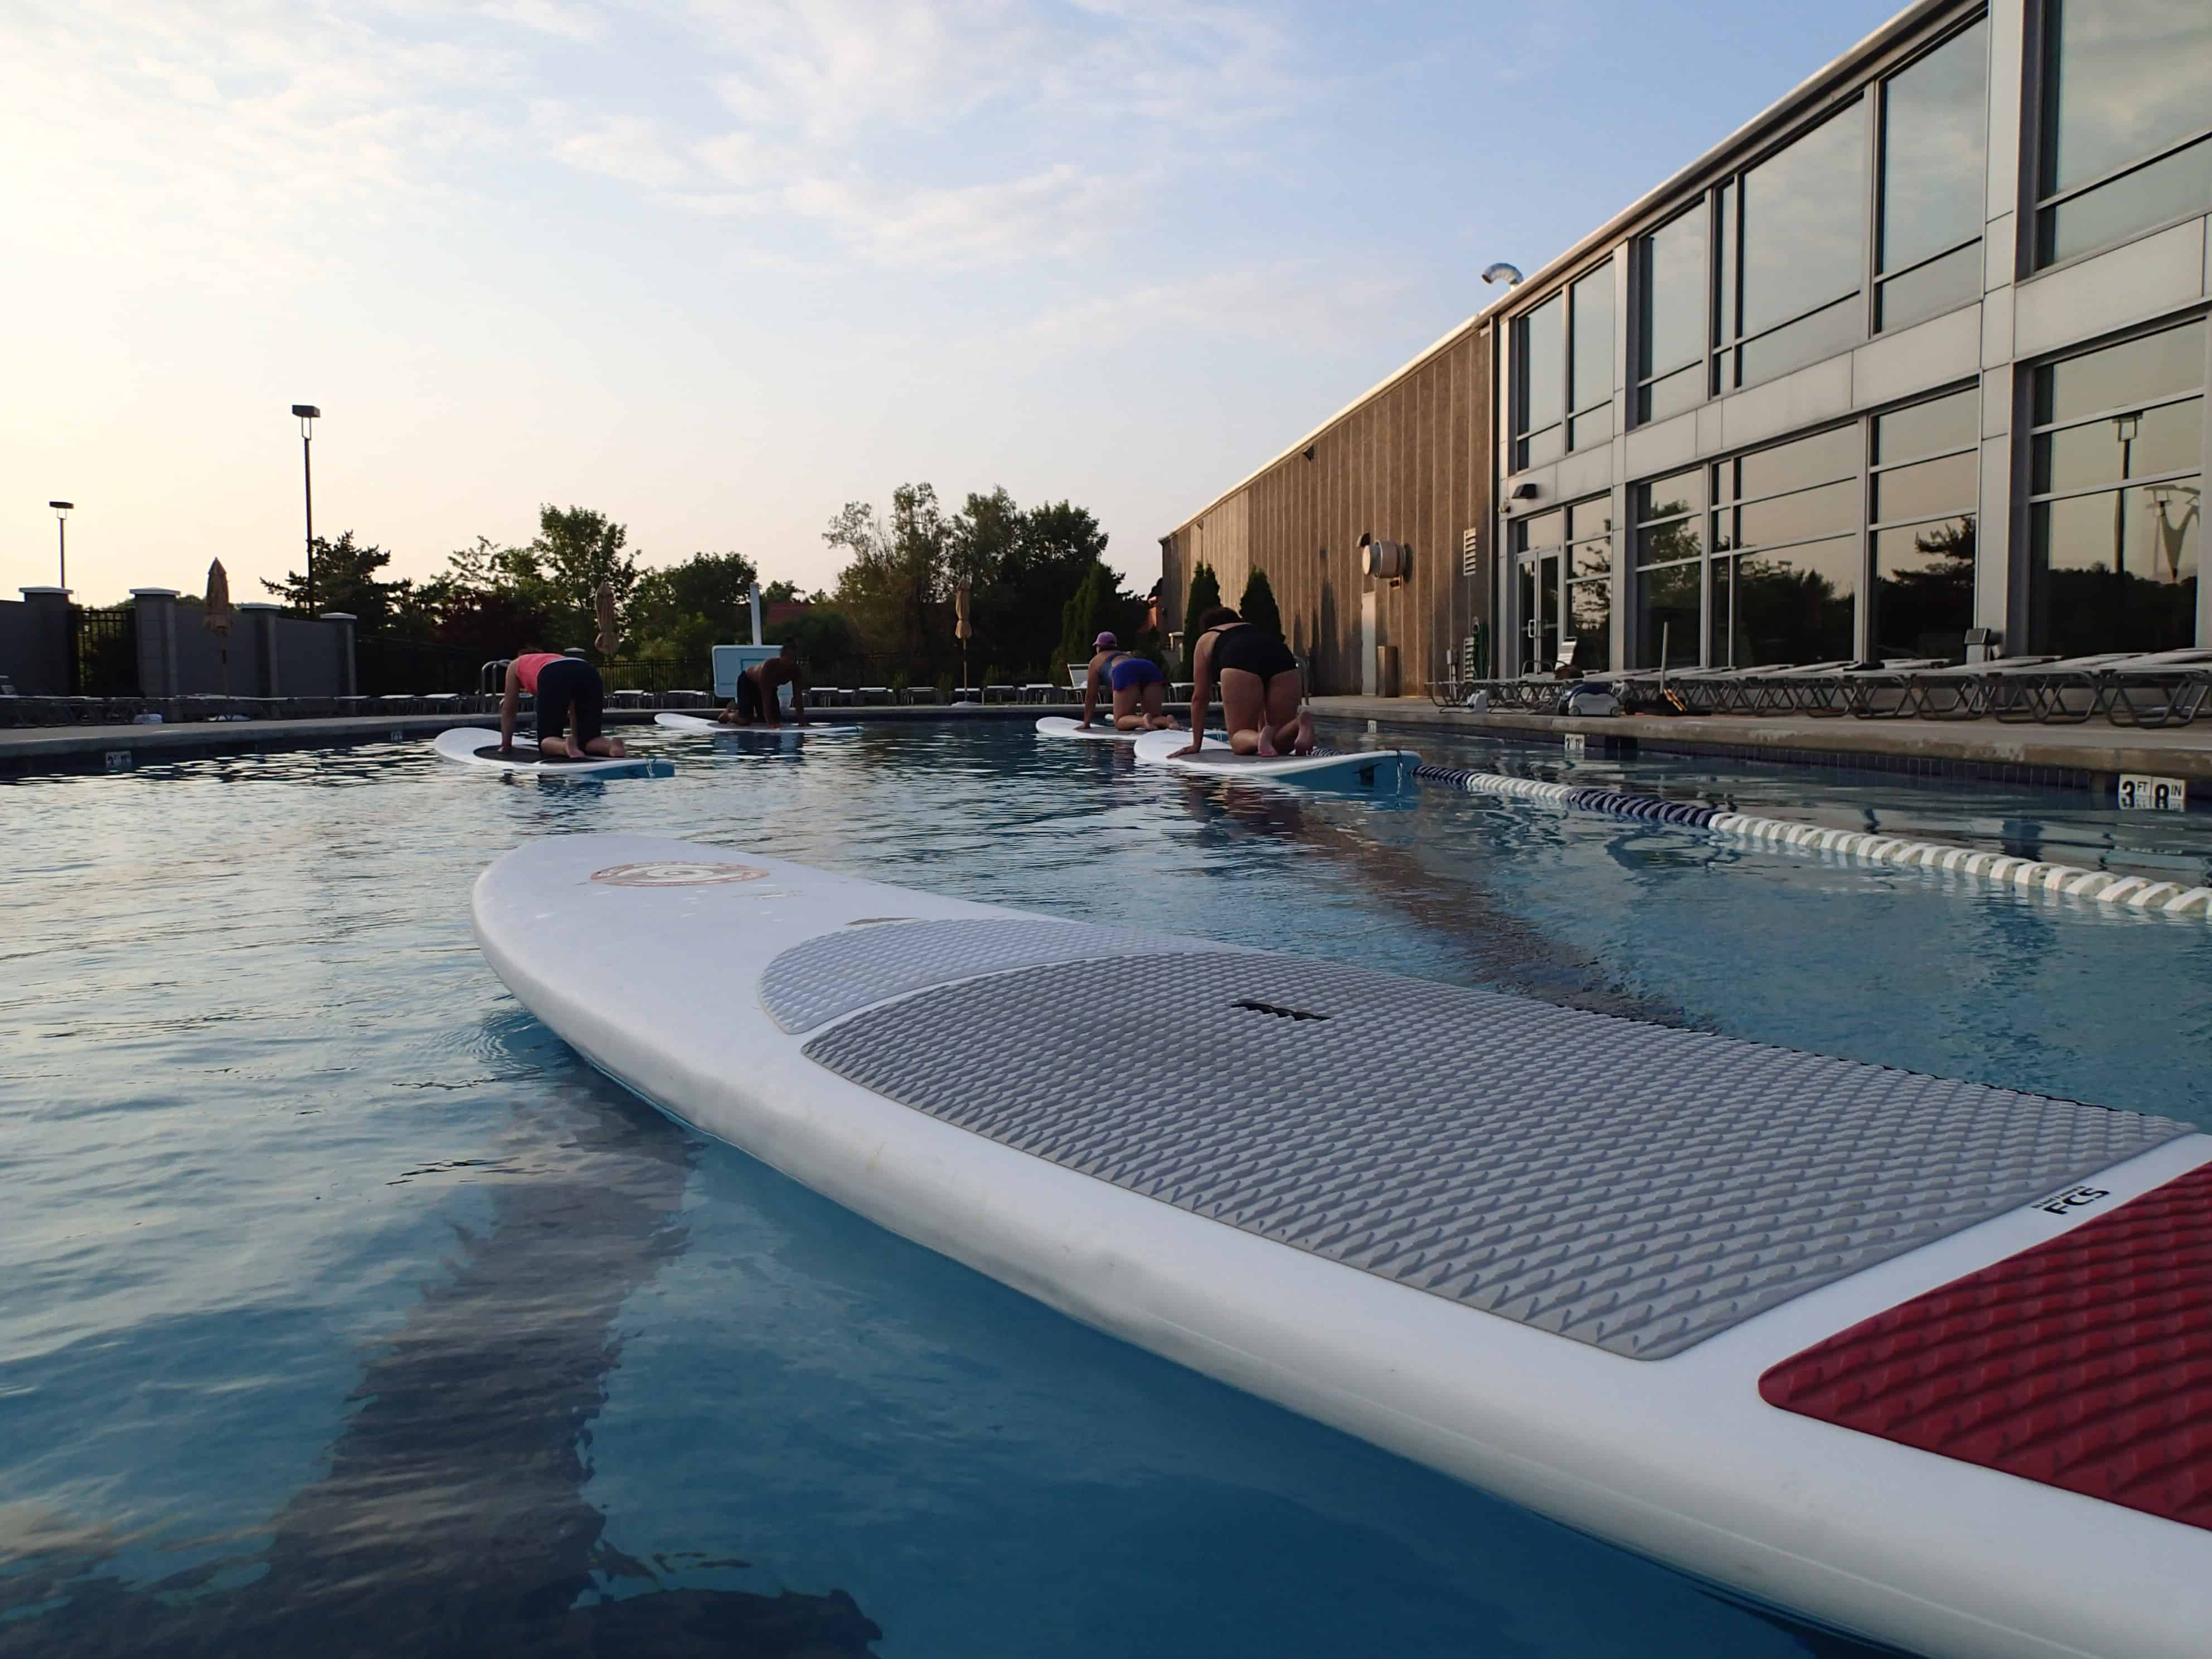 Stand Up Paddle Board Yoga at Elite Sports Clubs